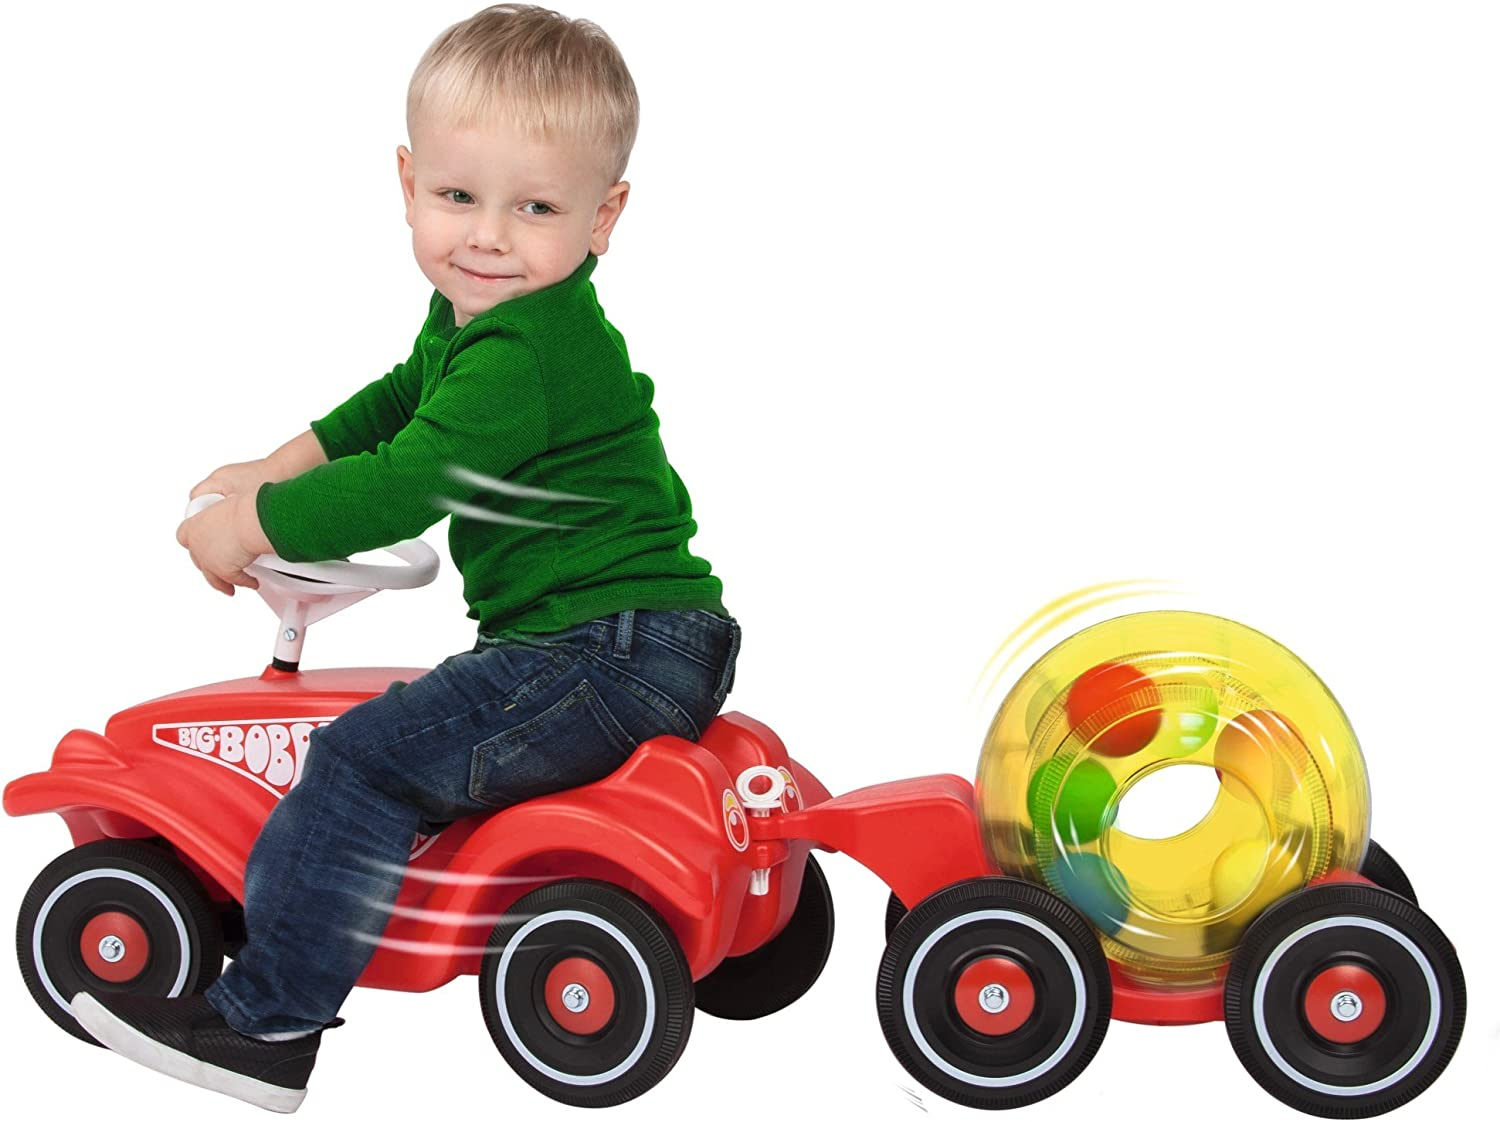 BIG 800056262 Mix Trailer Toy for Bobby-Car